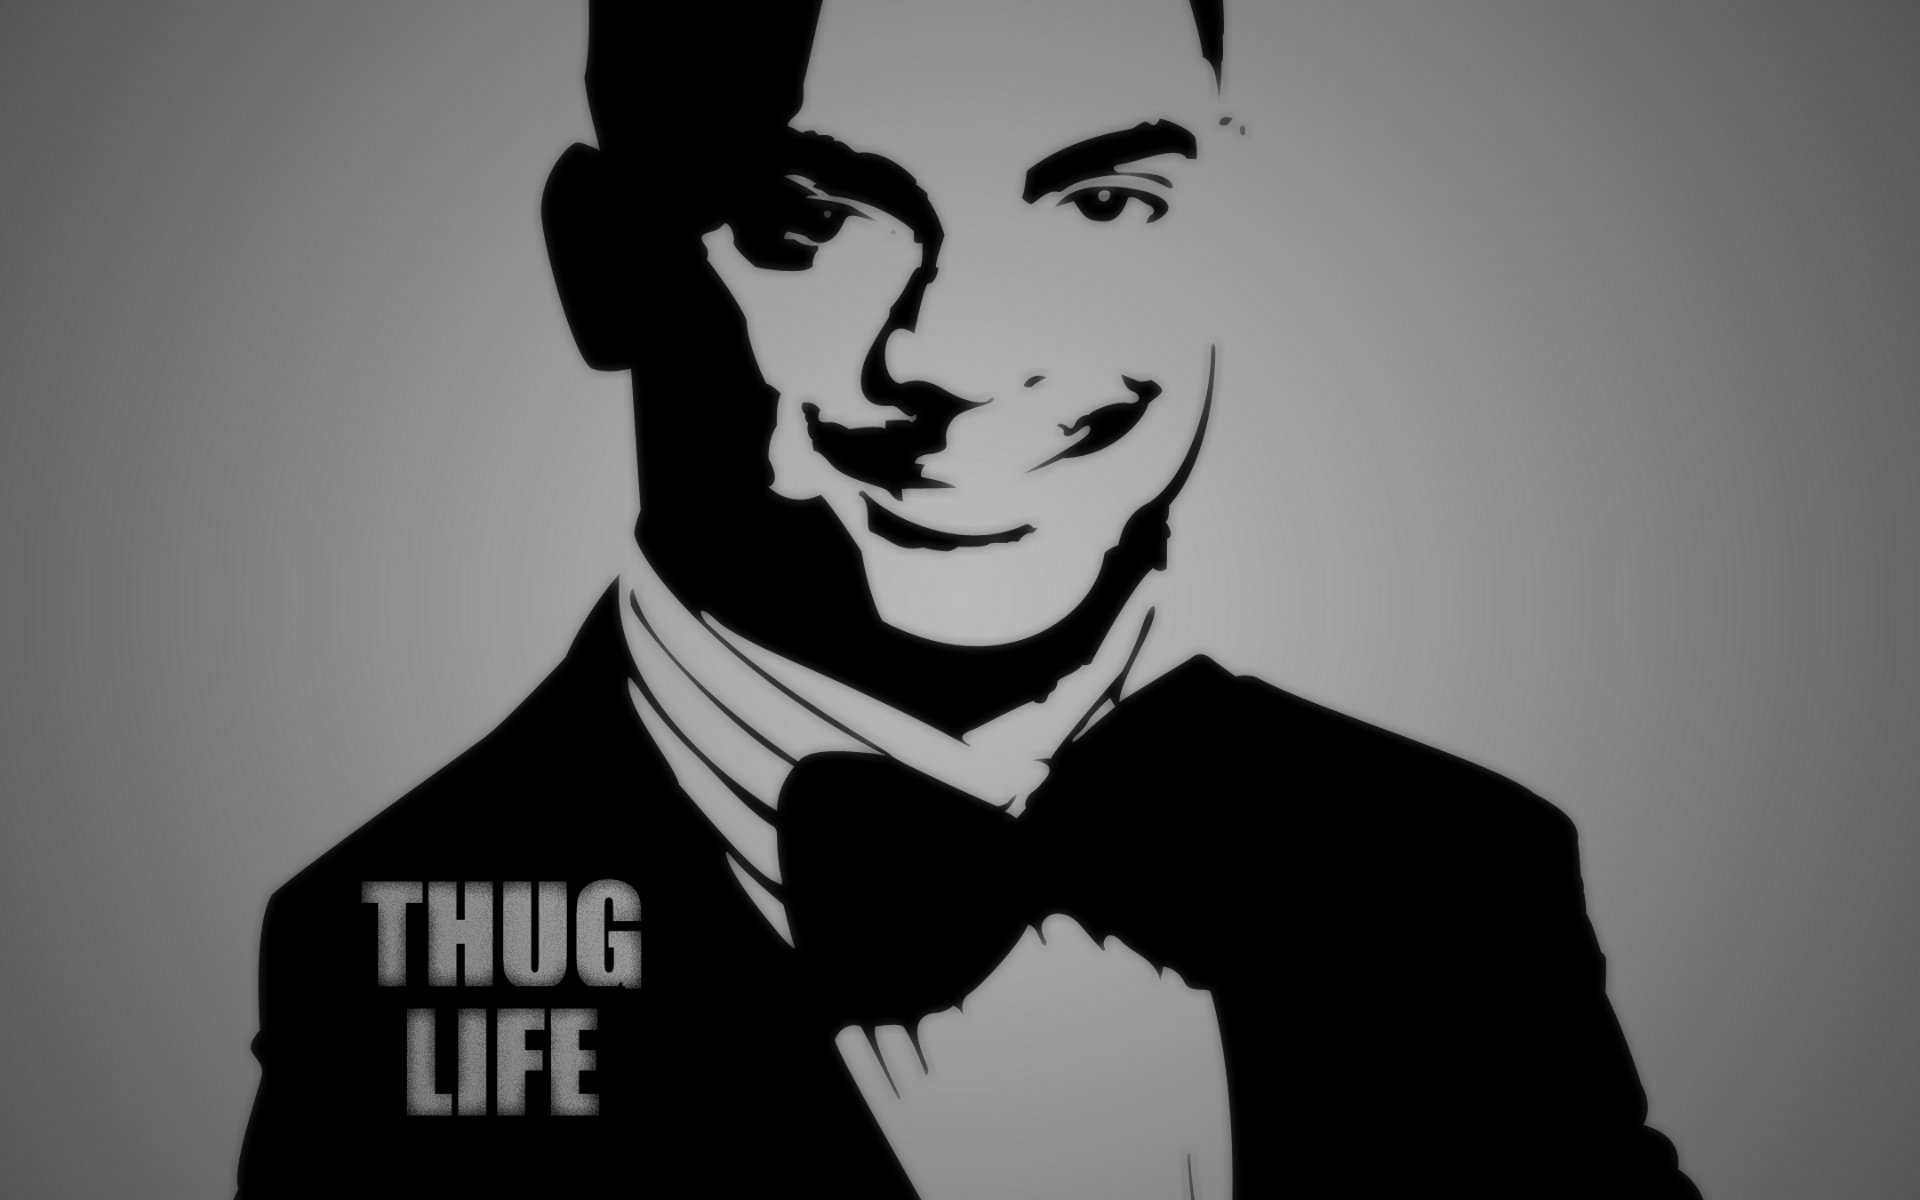 Thug Life Wallpaper   Hilarious Wallpaper 1920x1200